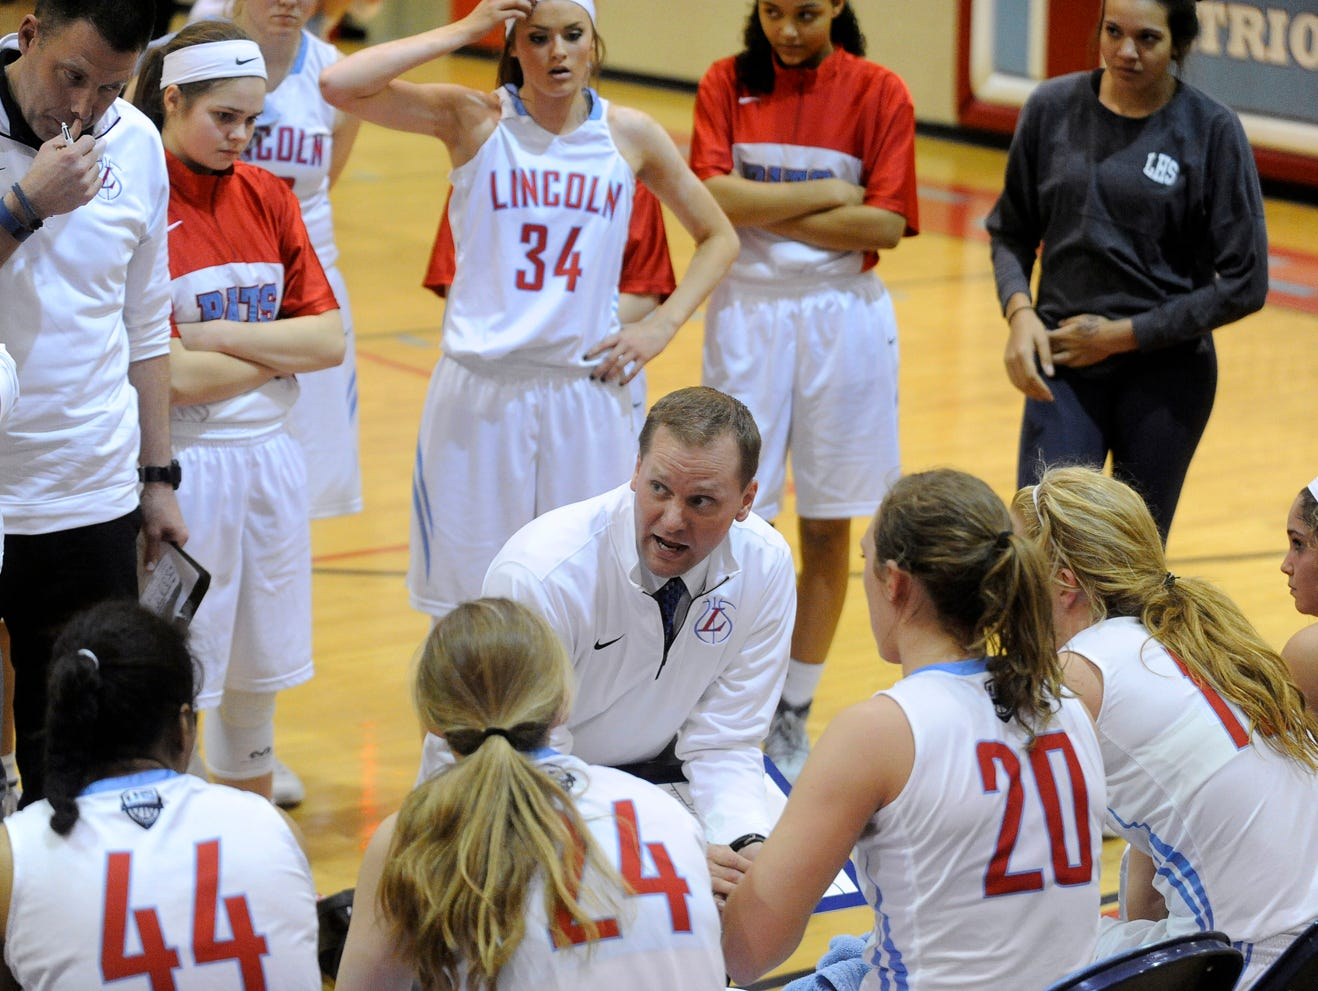 Lincoln's head coach Matt Daly talks with his team during a timeout against Roosevelt during girls basketball action at Lincoln High School in Sioux Falls, S.D., Thursday, Feb. 18, 2016.